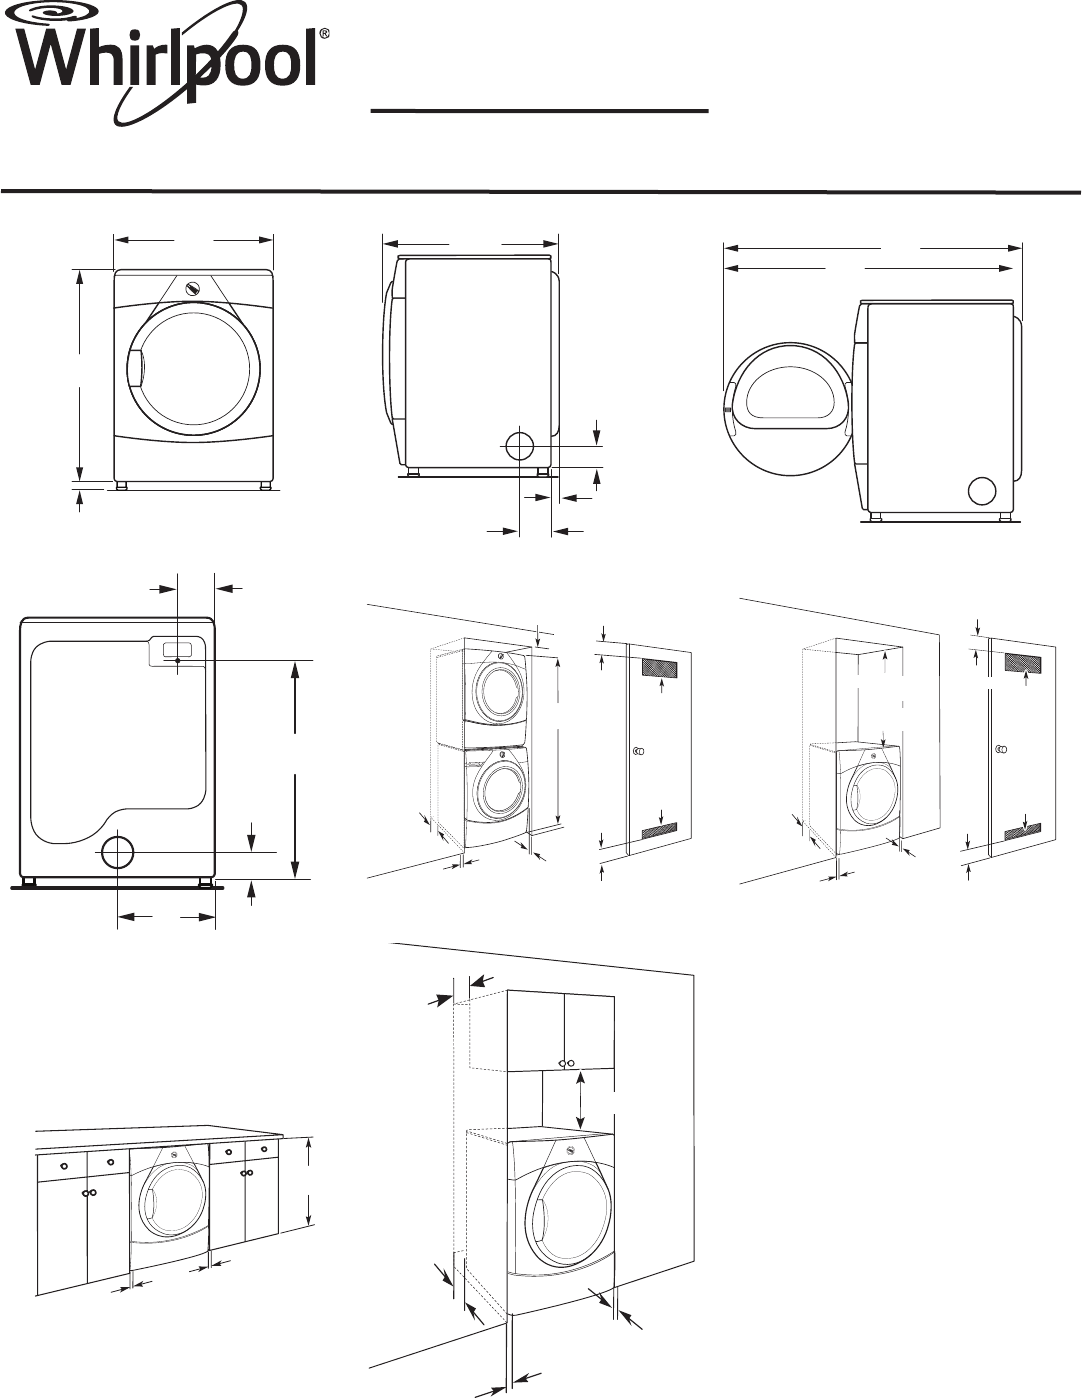 Whirlpool Clothes Dryer WGD9150W User Guide